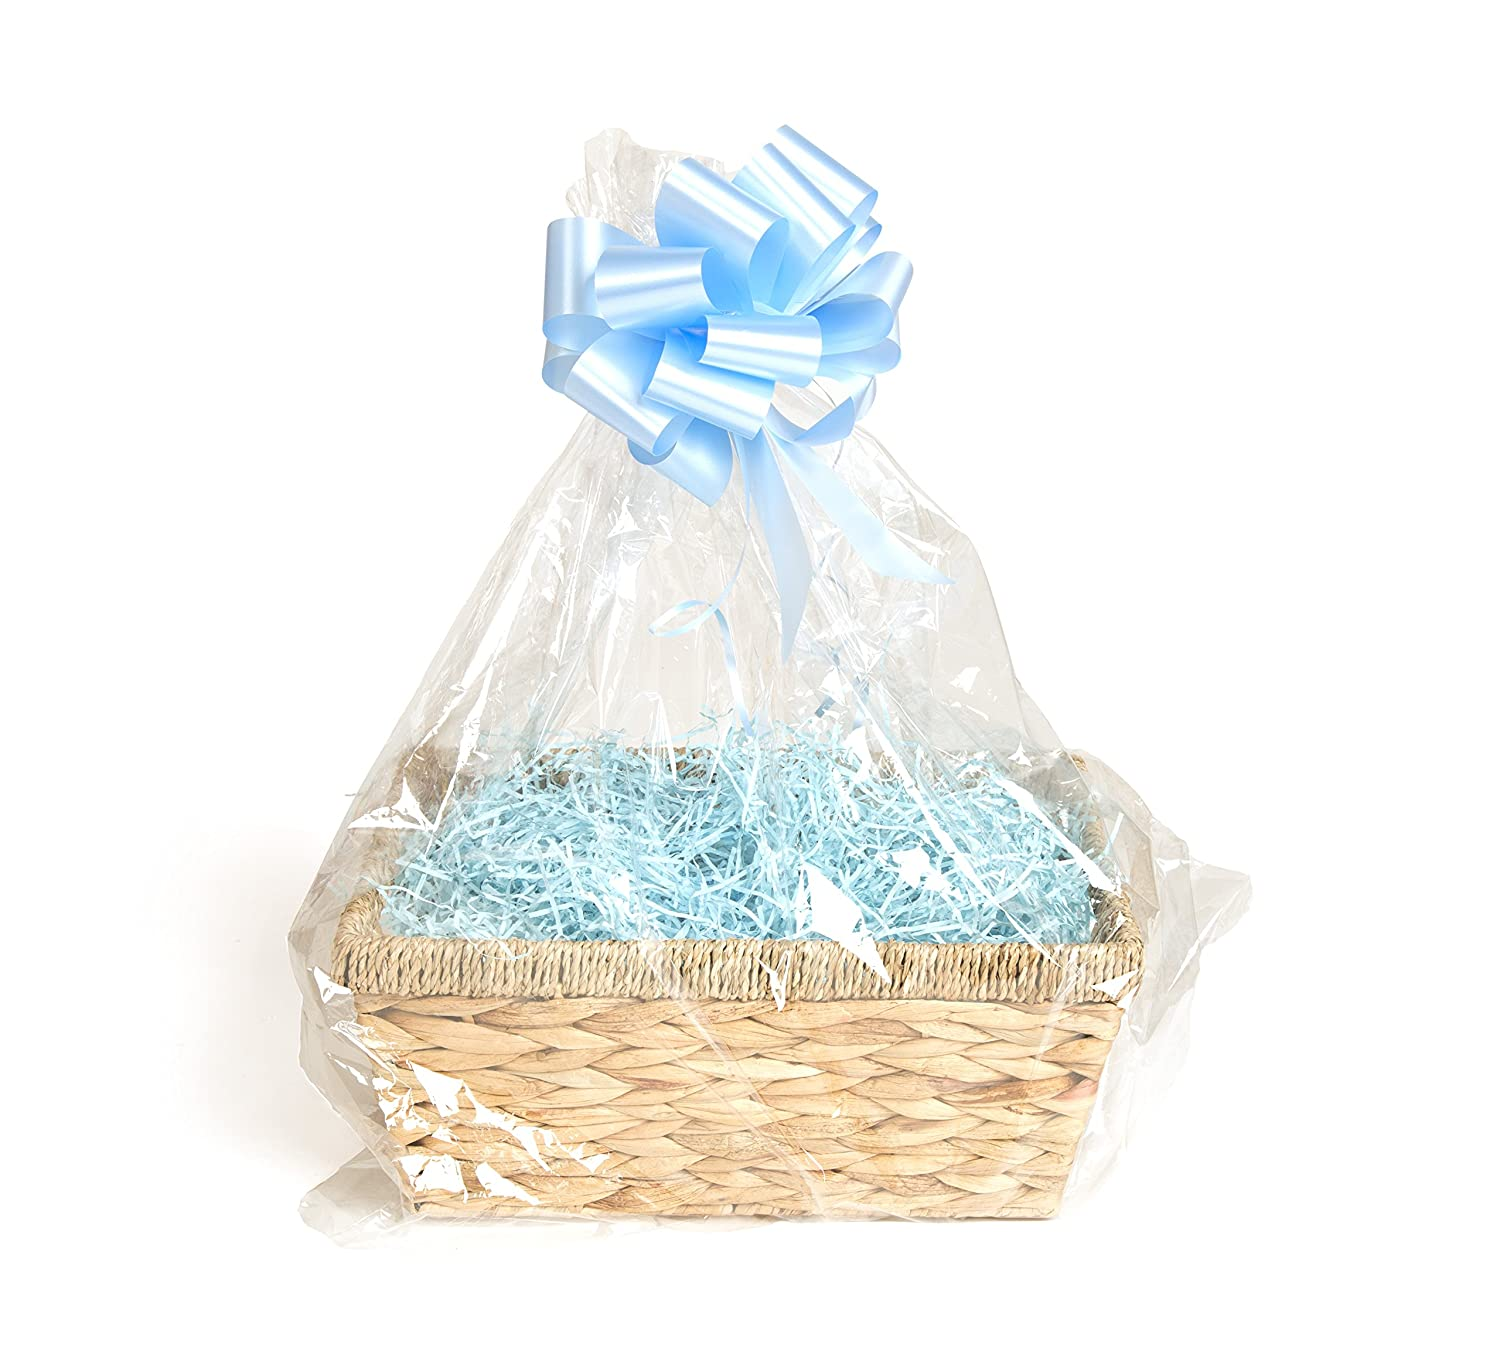 Your Gift Basket - Natural Straw Basket & DIY Hamper Kit with Blue Shred, Blue Bow and Clear Gift Wrap